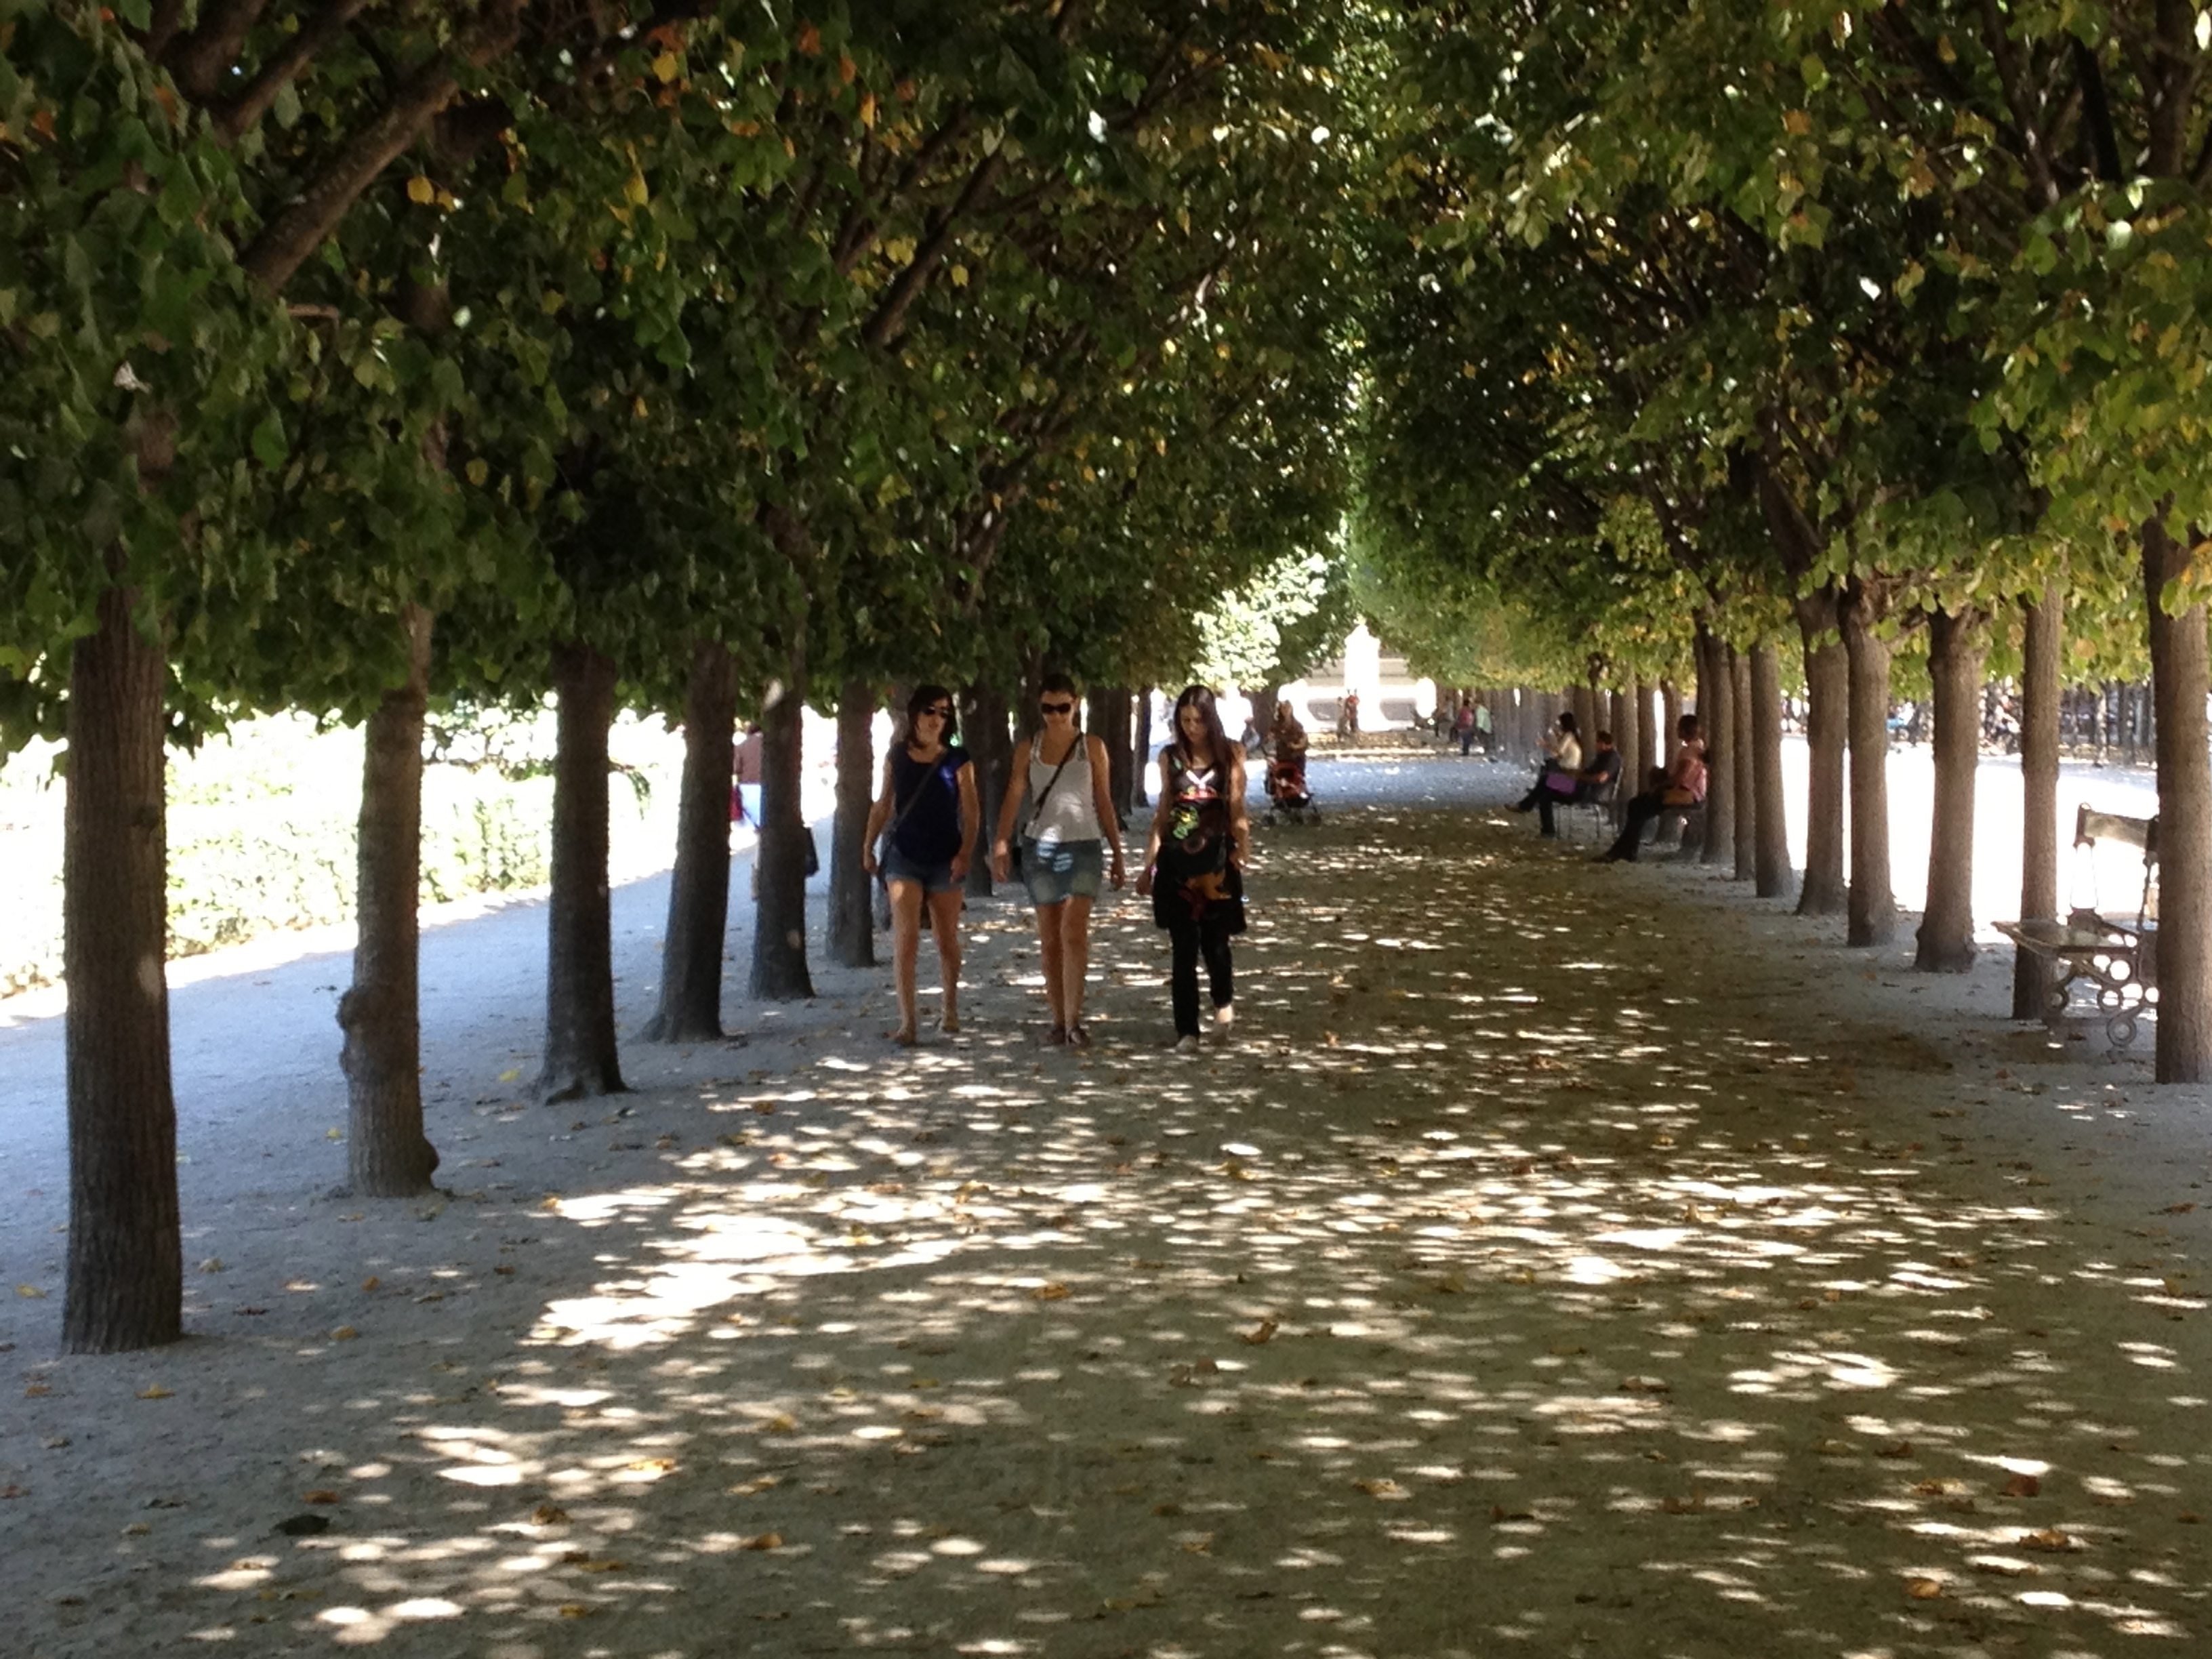 The Carefully Manicured Trees Cast Dapples Of Shade In The Gardens Of The  Palaisroyal, Just As They Would Have 250 Years Ago In The Days Of  Elisabeth Vig�e